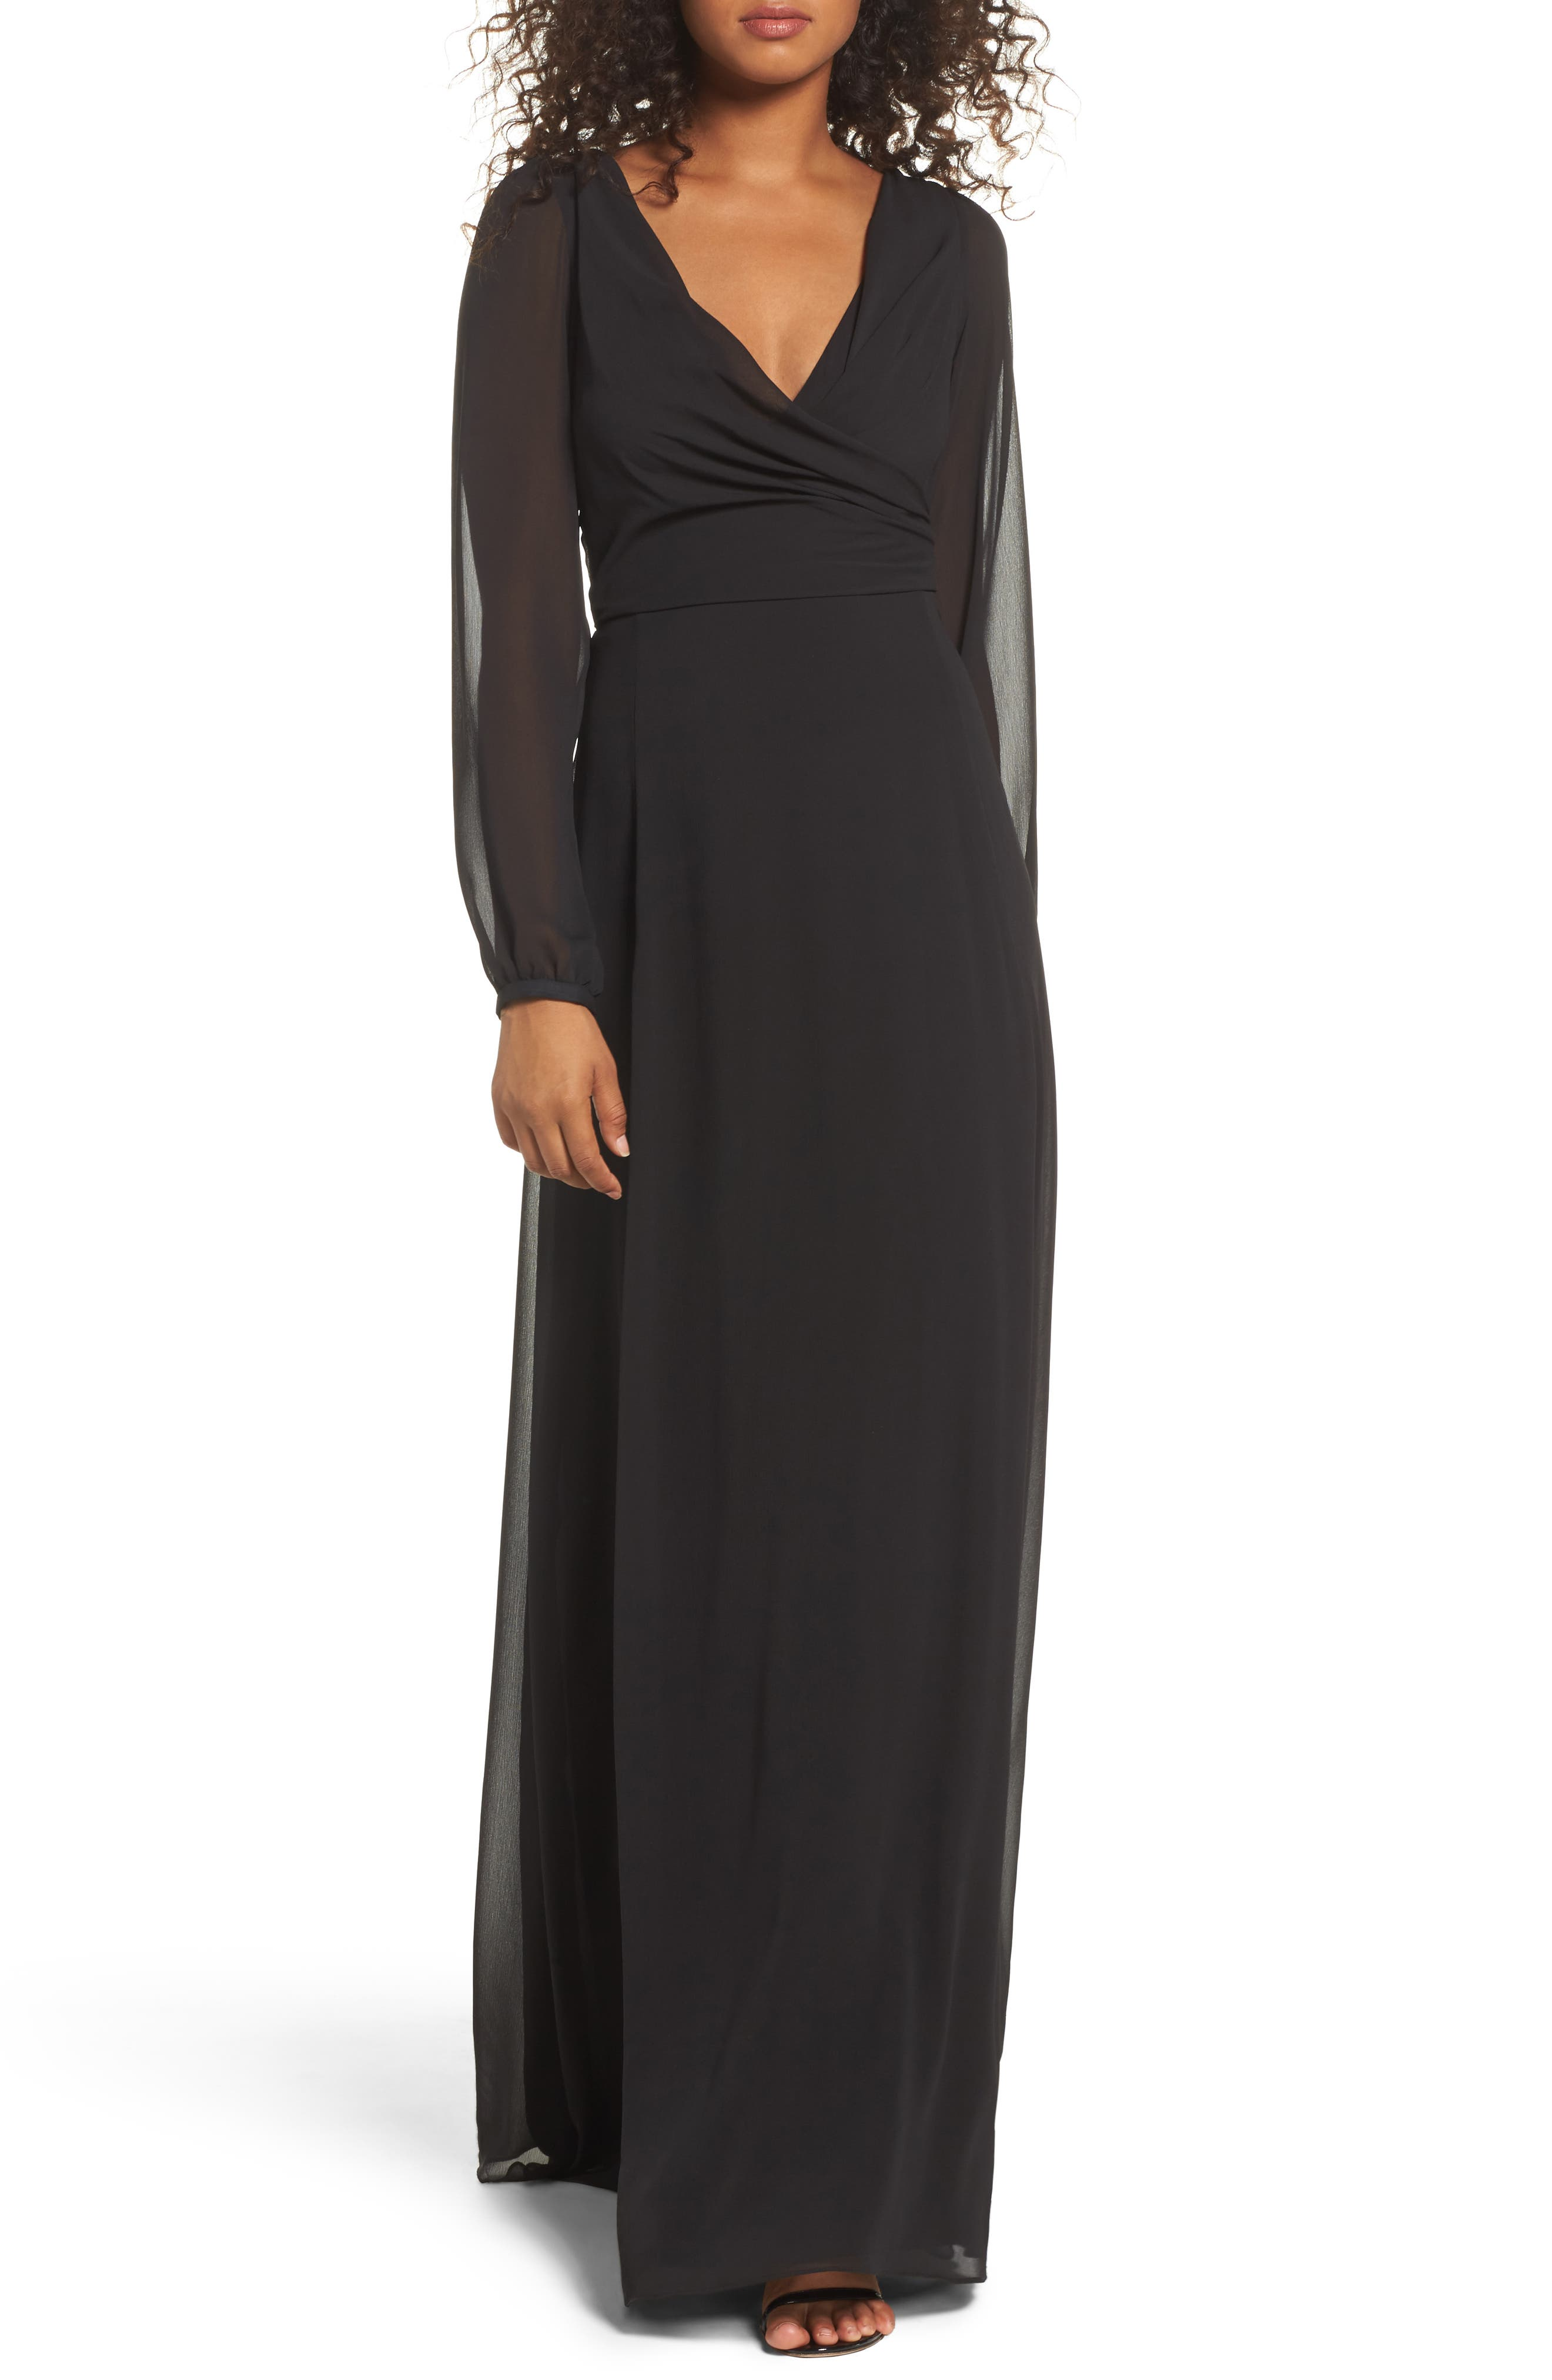 Main Image - Watters Donna Luxe Chiffon Surplice A-Line Gown